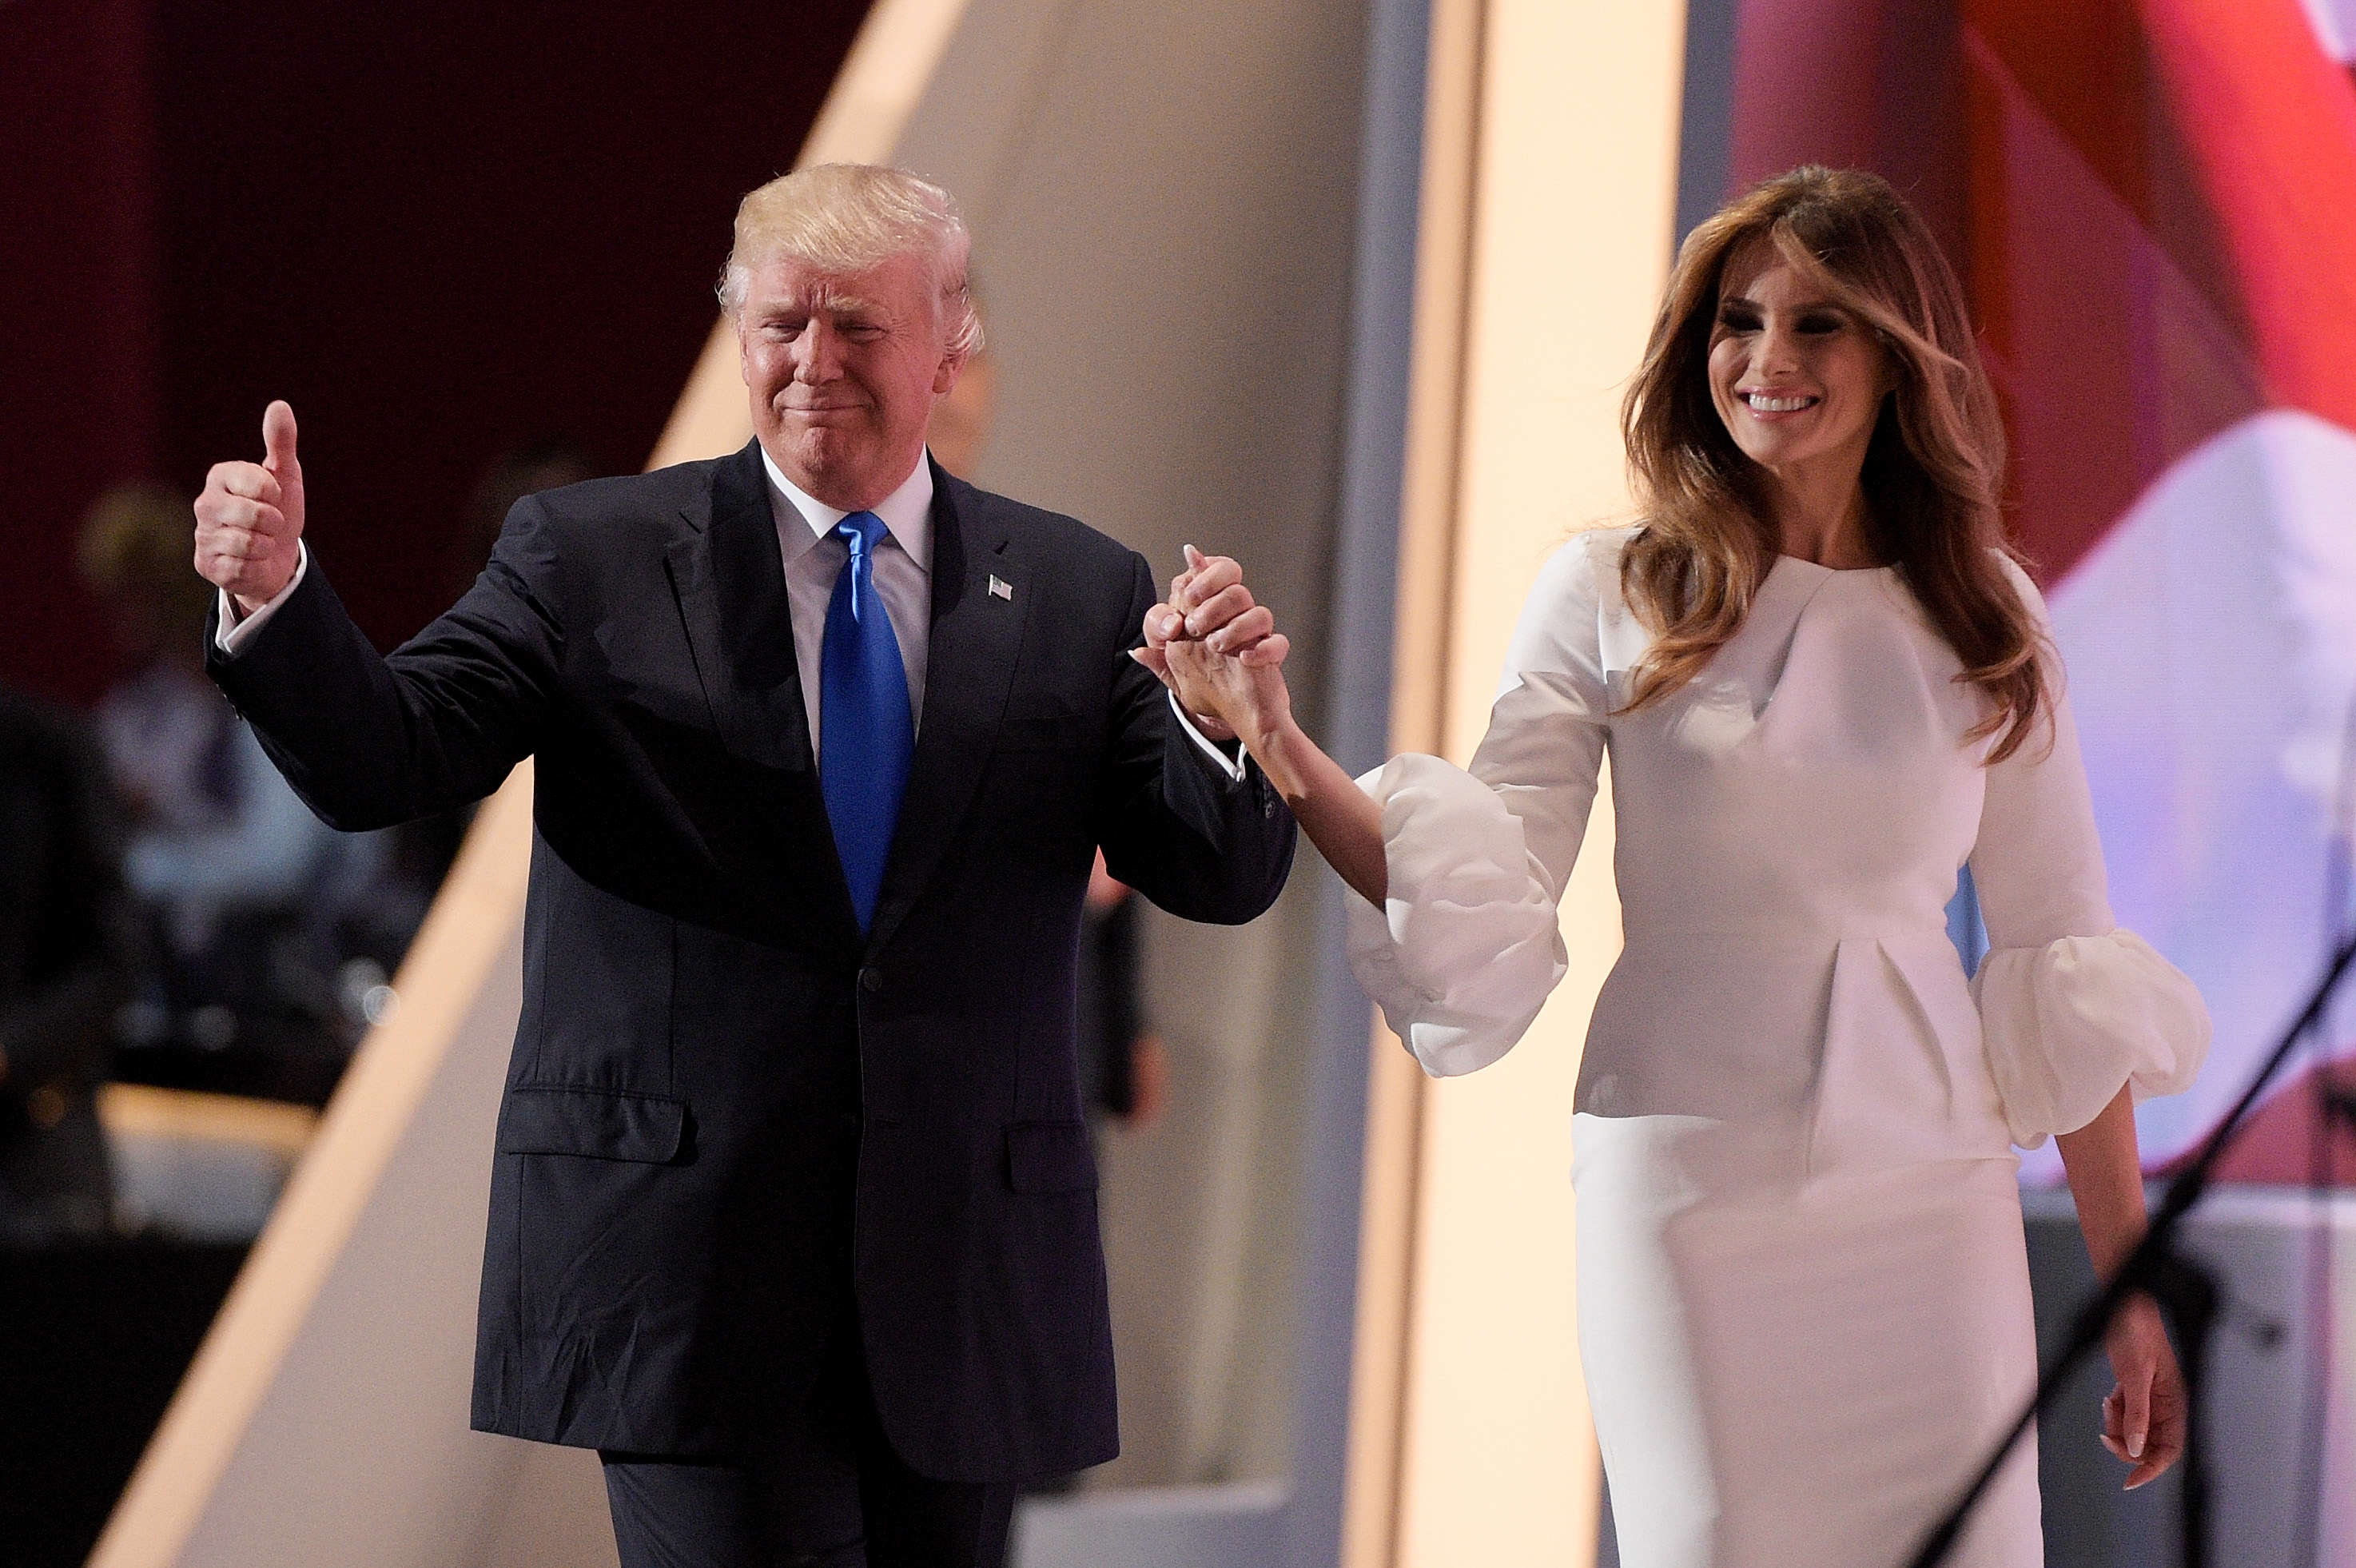 Did Donald Trump Leak Wifes Nude Photos To Help With Campaign? GettyImages 577293562